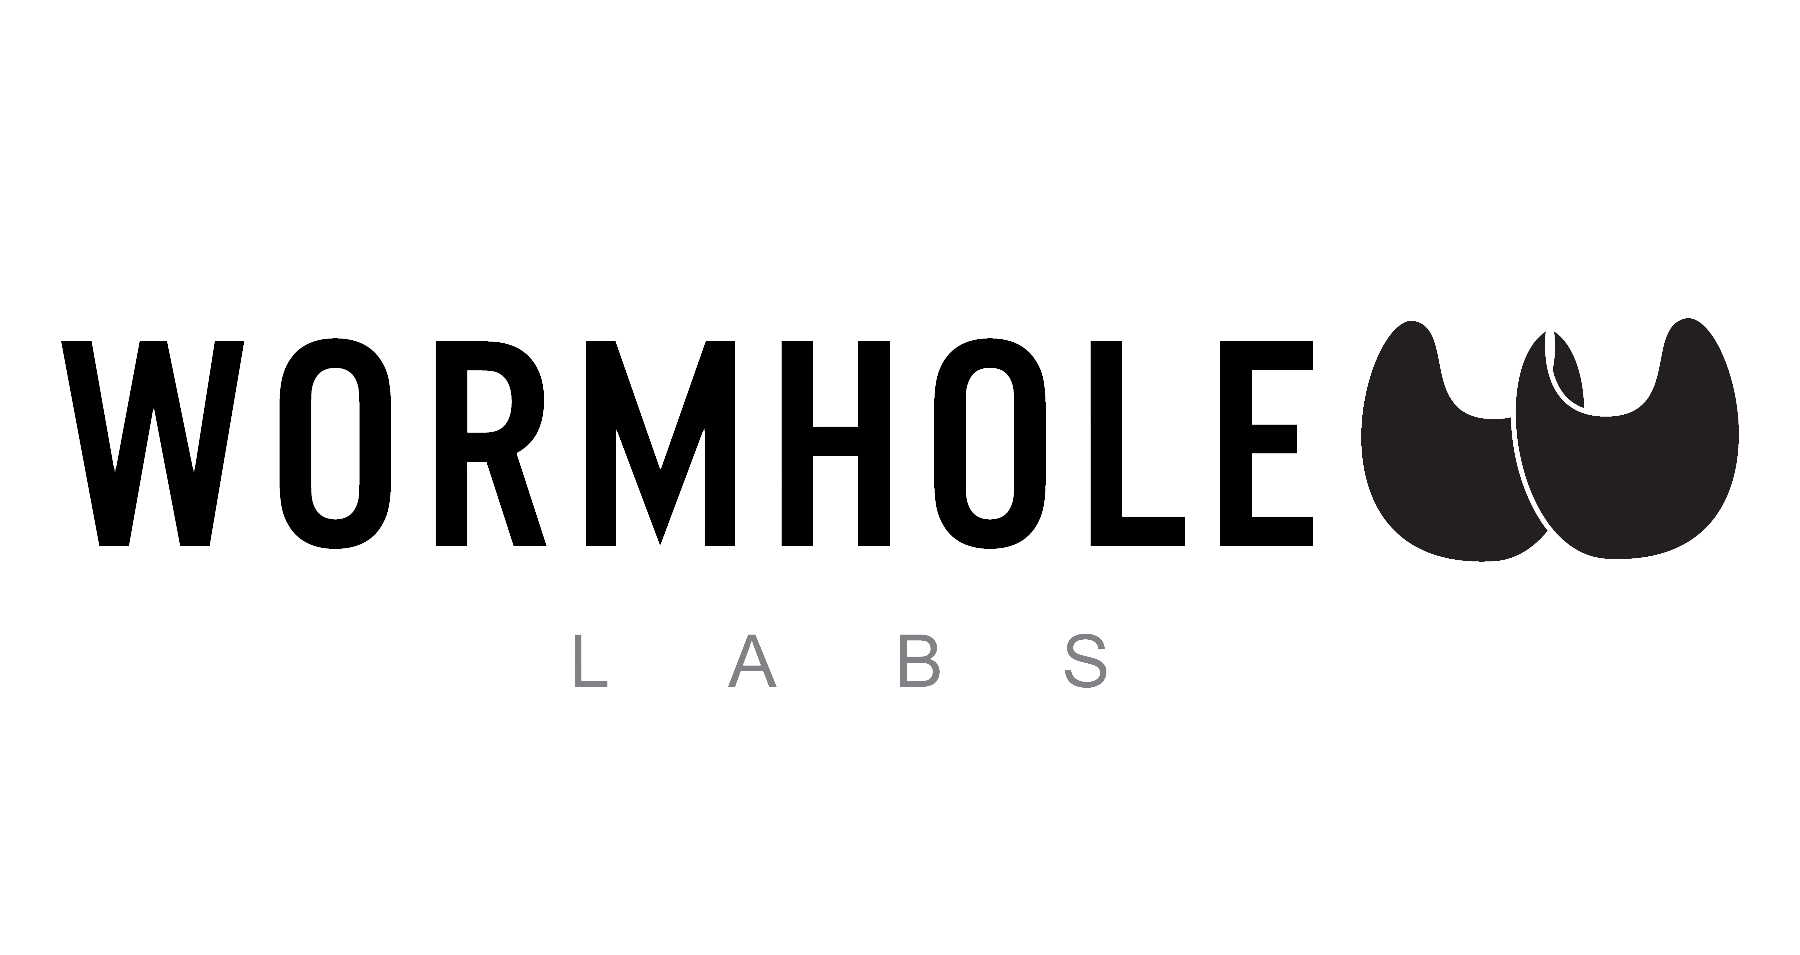 Wormhole Labs, creator of Wormhole